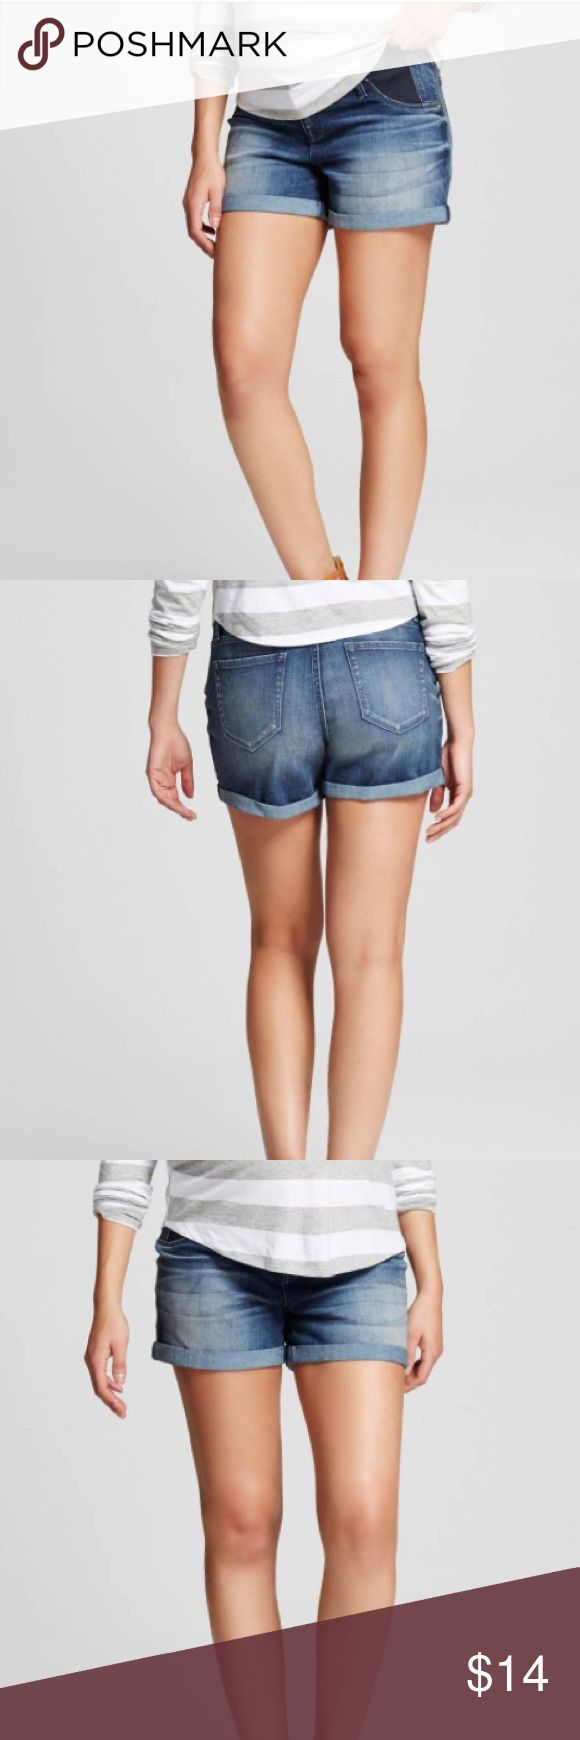 Liz Lange Maternity Shorts Liz Lange Maternity Shorts size small! Great condition, no signs of wear. Inset side Panels feel like your wearing your normal shorts, only more comfortable! Bundle with other Maternity items to save! ❤️ still for sale at Target! Liz Lange for Target Shorts Jean Shorts